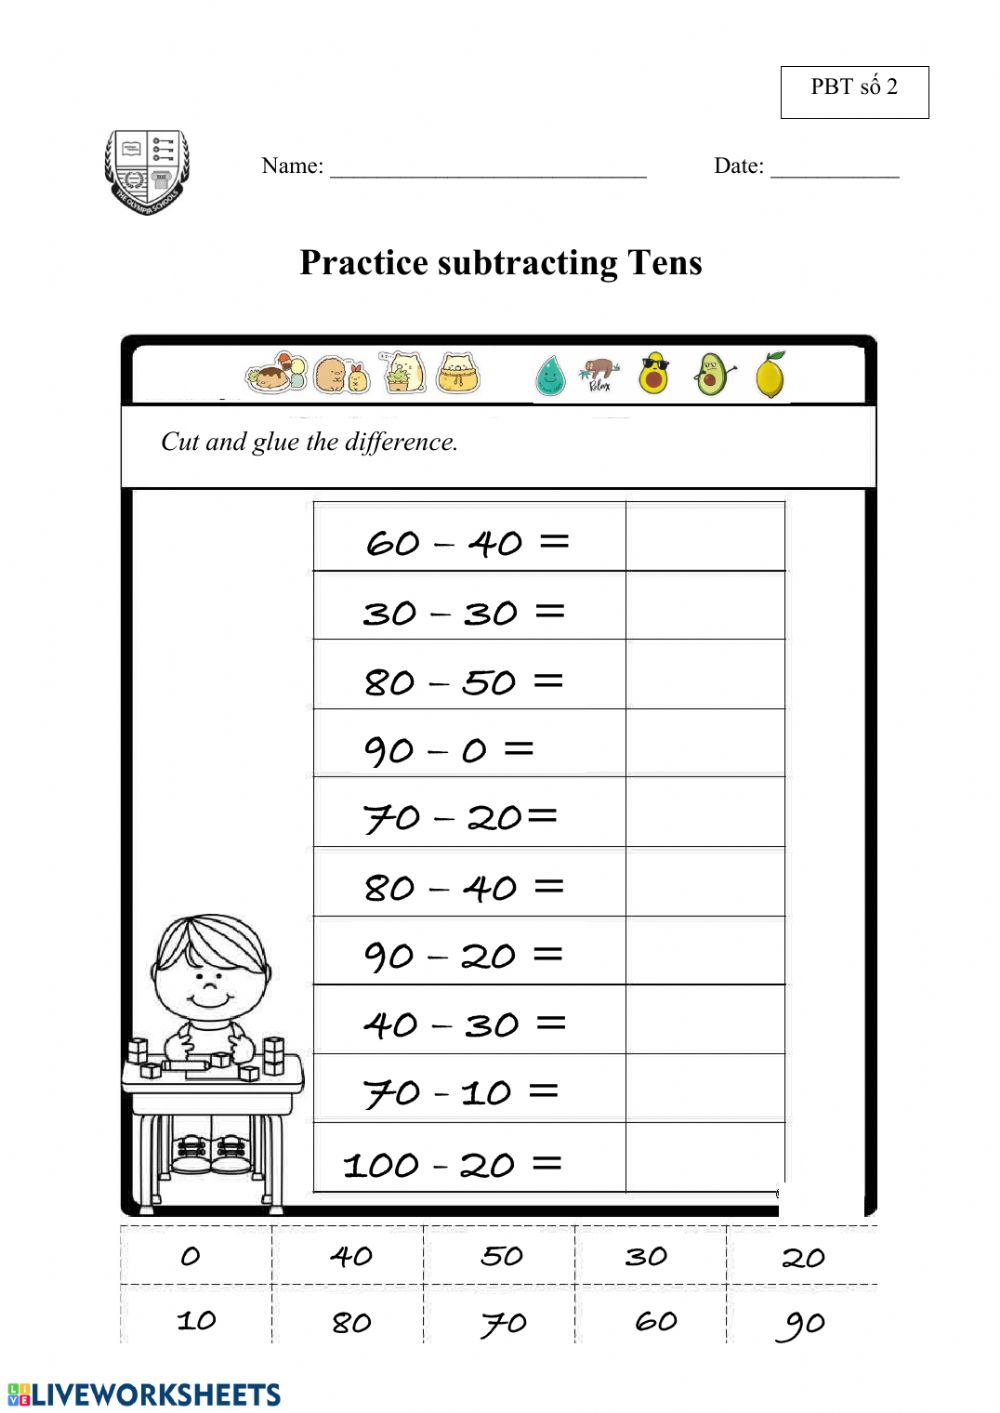 hight resolution of Subtracting Tens (PBT số 2) worksheet